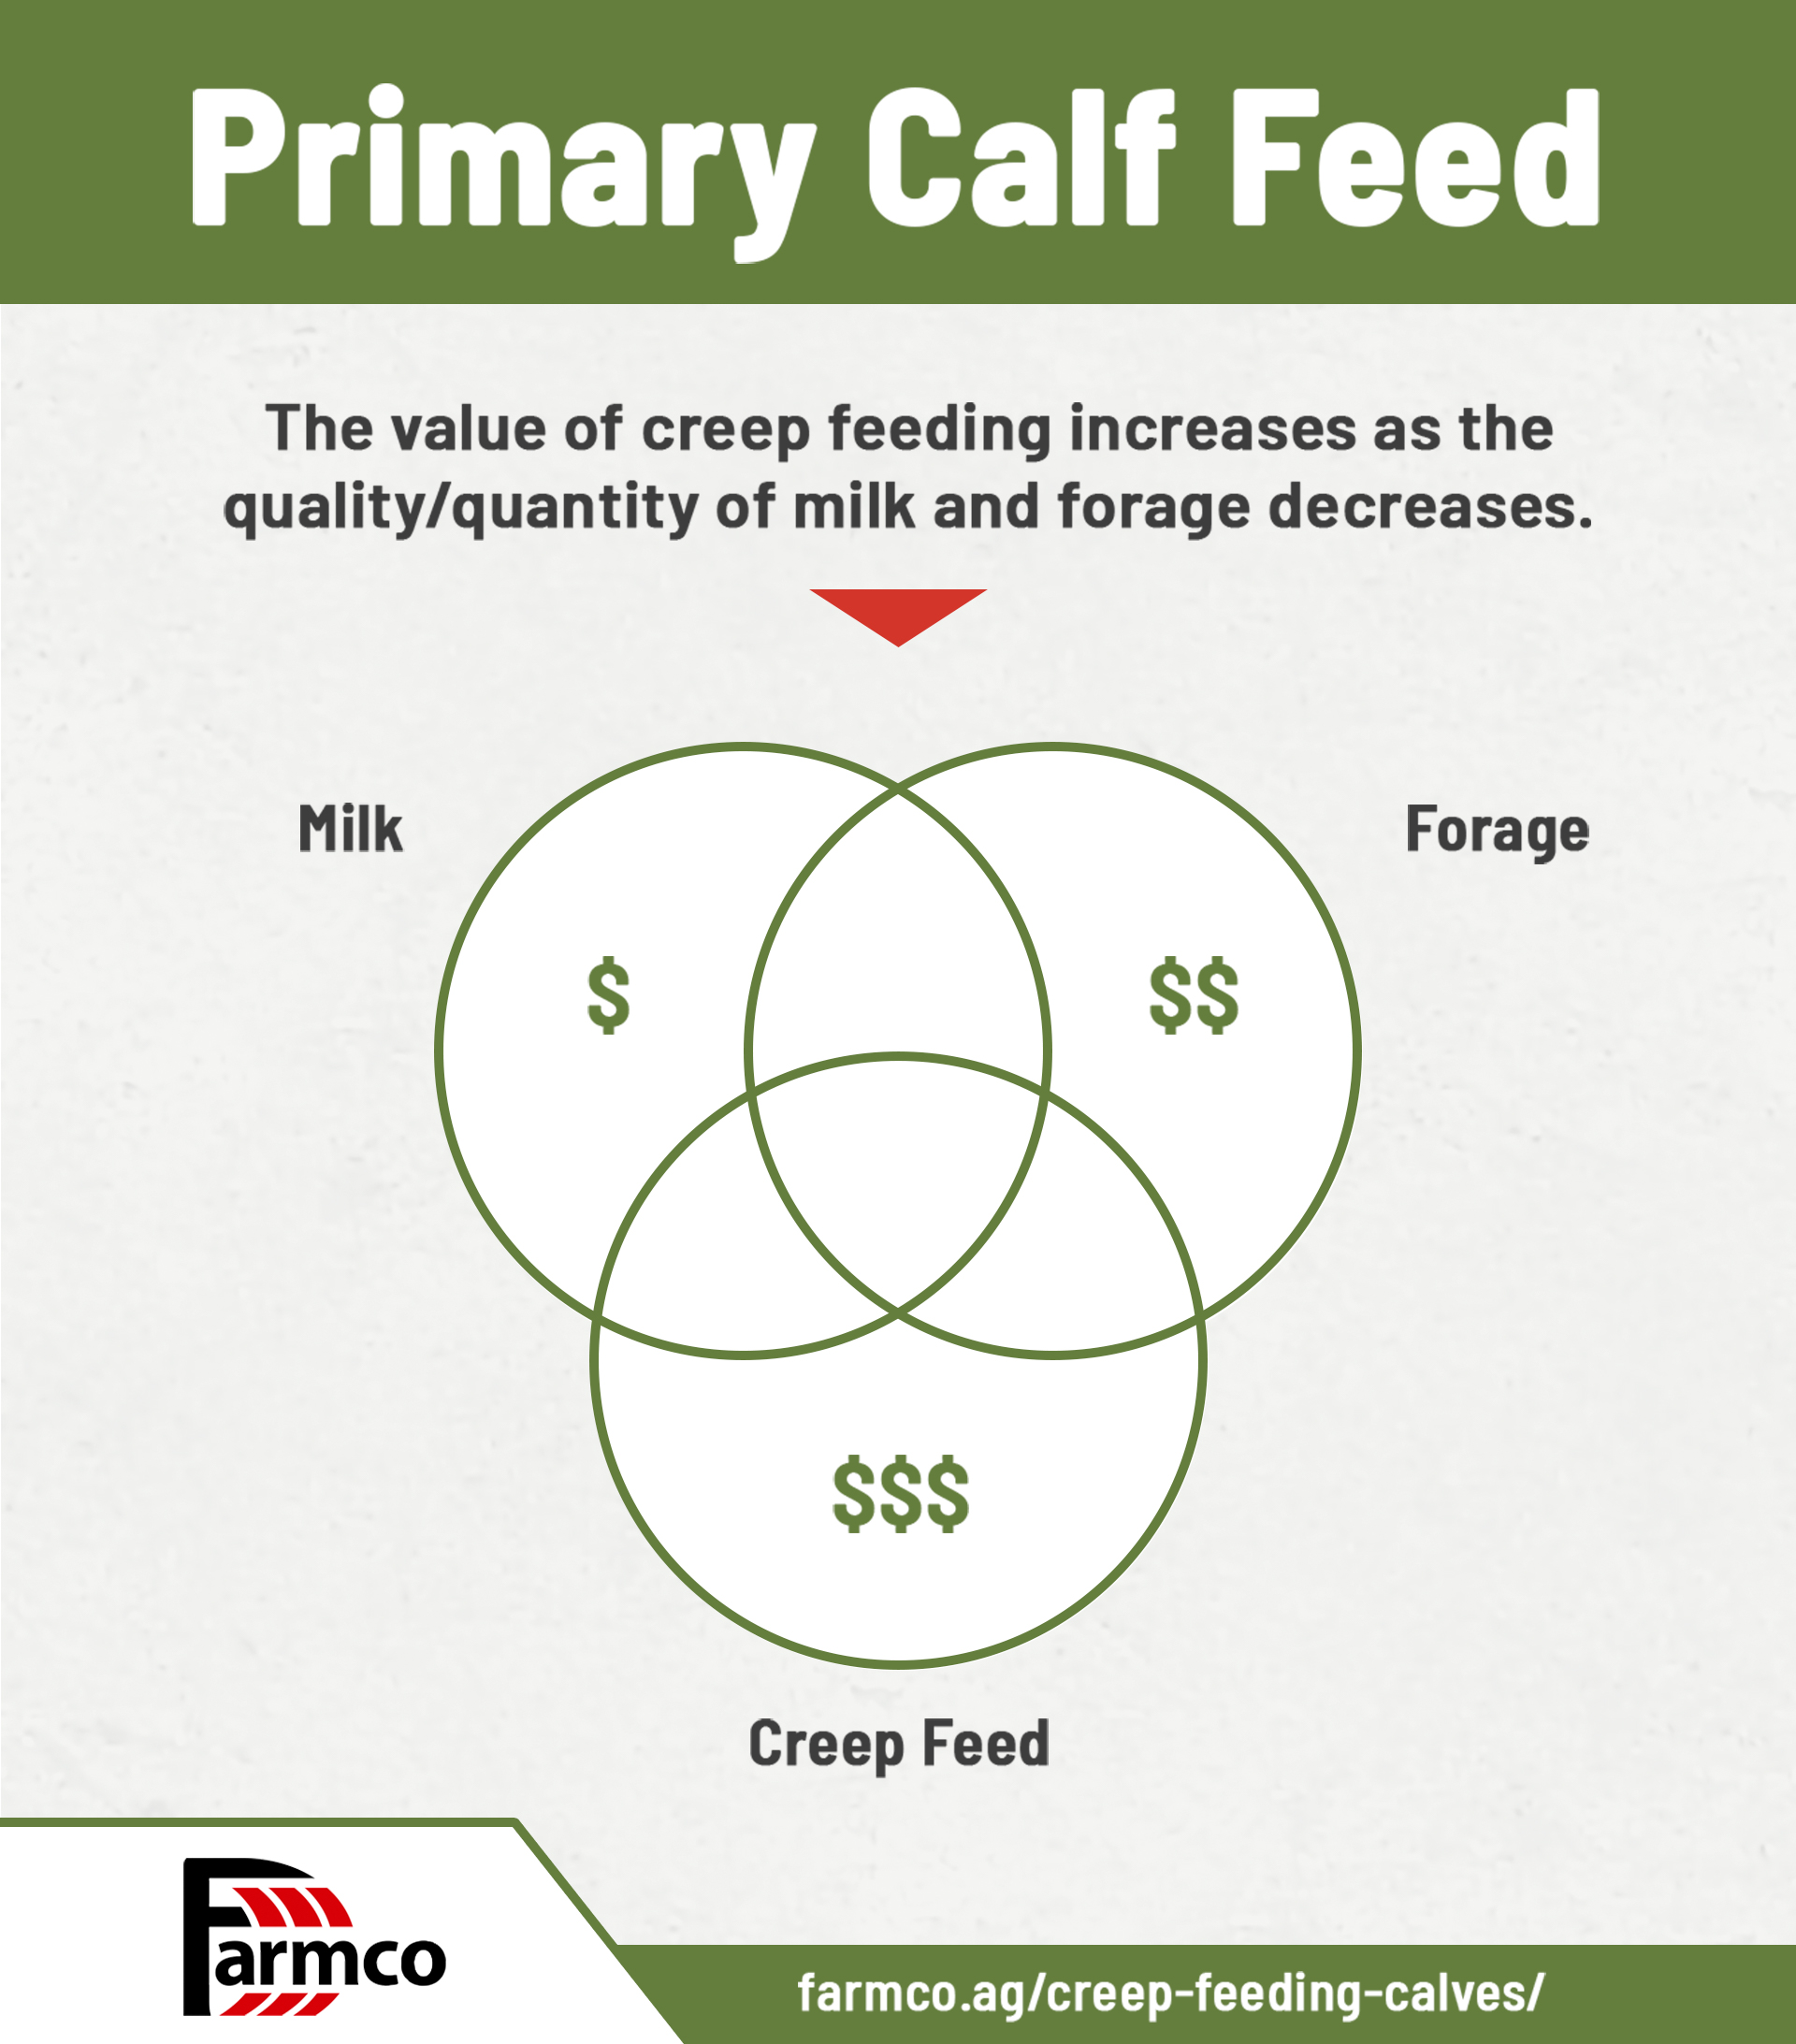 Graphic of primary feed sources for creep feeding calves